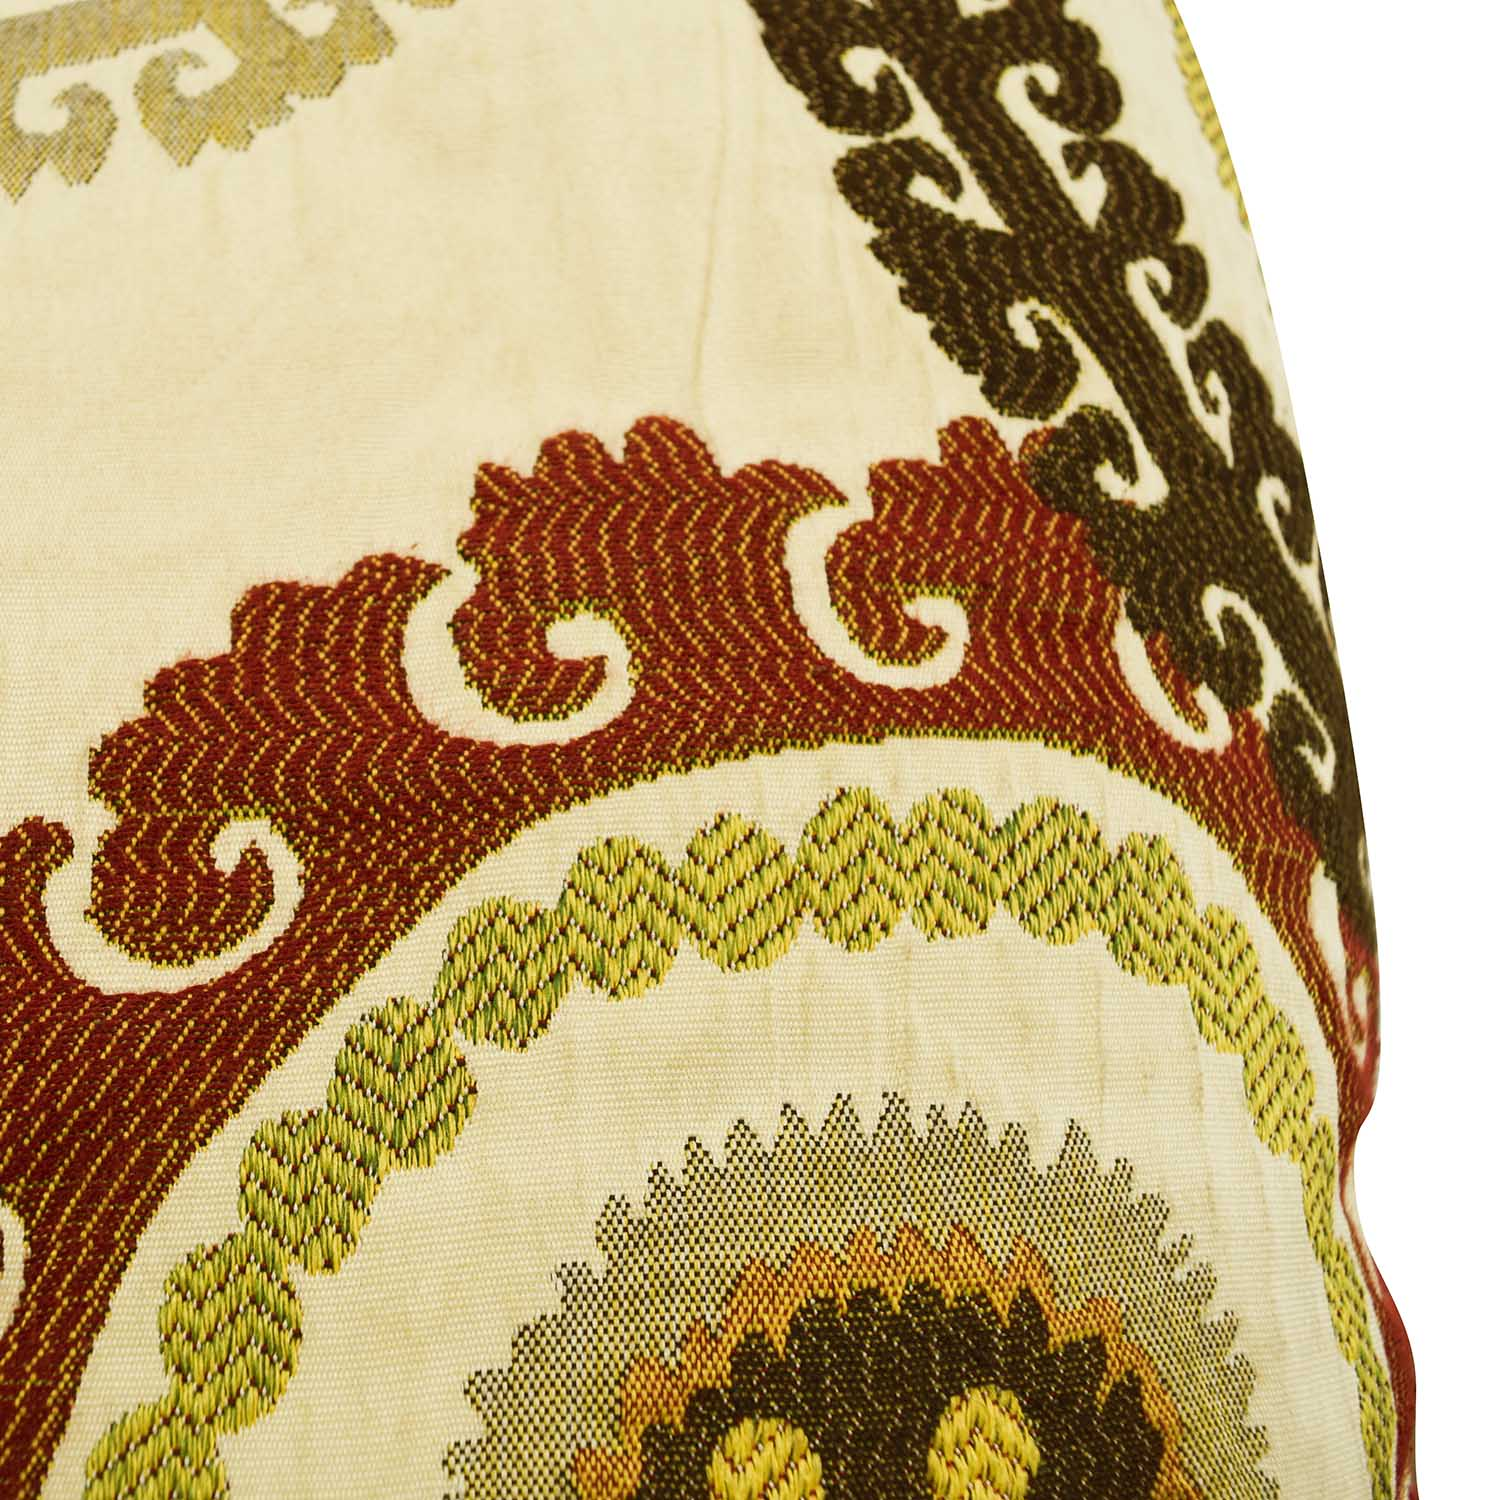 Multi-colored Embroidered Square Pillows second hand